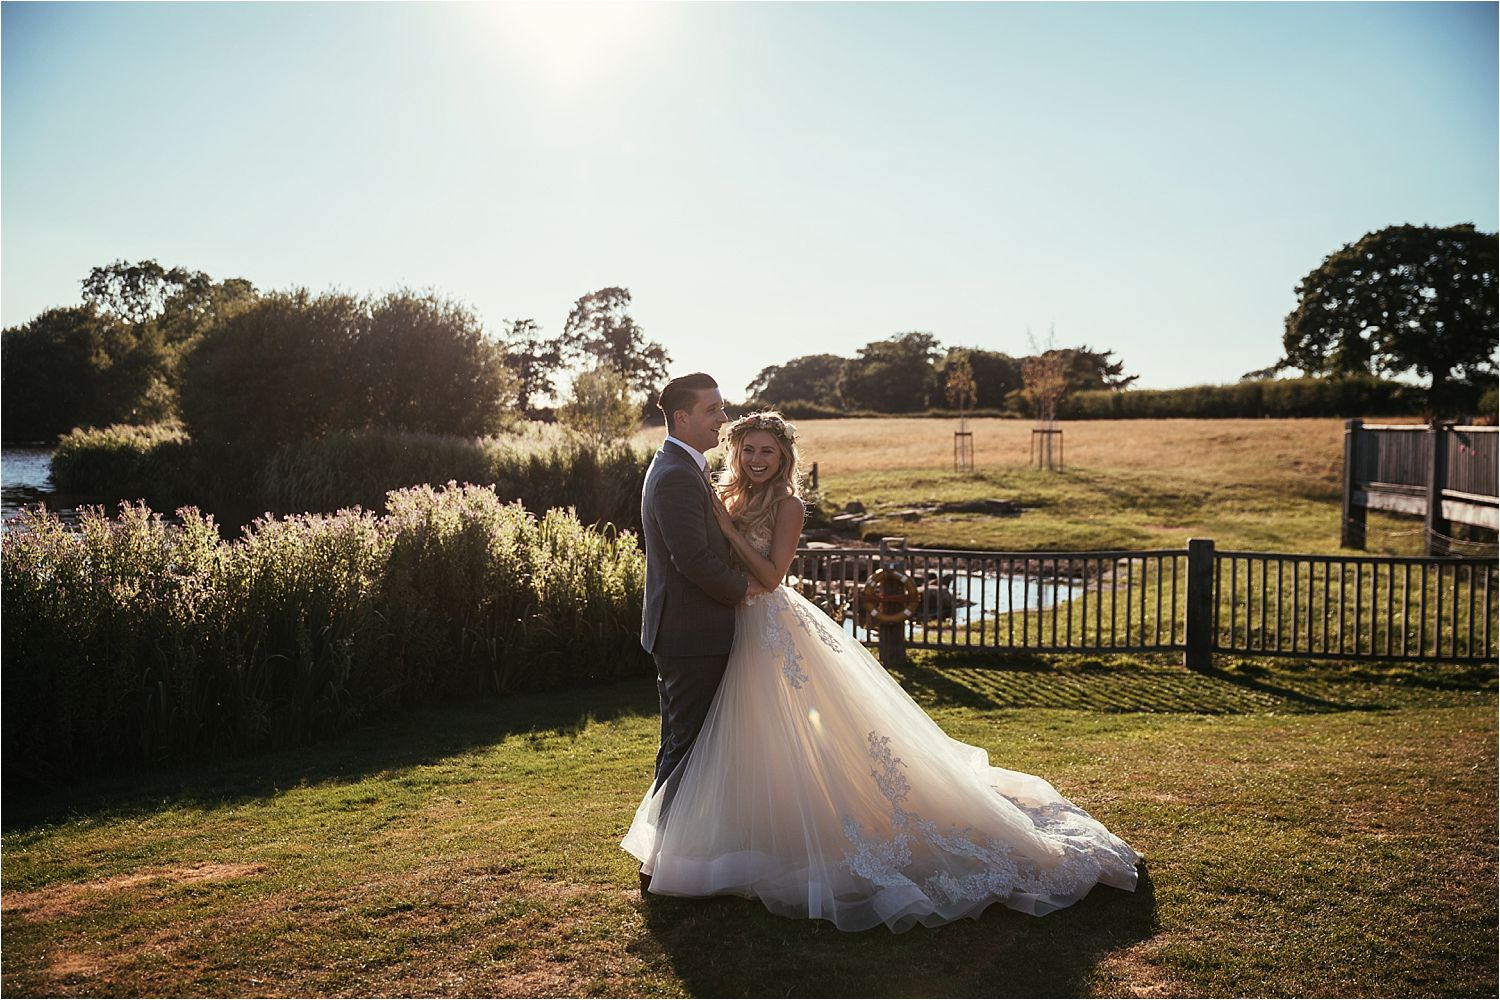 Bride and groom by side of lake at Sandhole oak Barn wedding venue, Cheshire. Dress by Lazarro